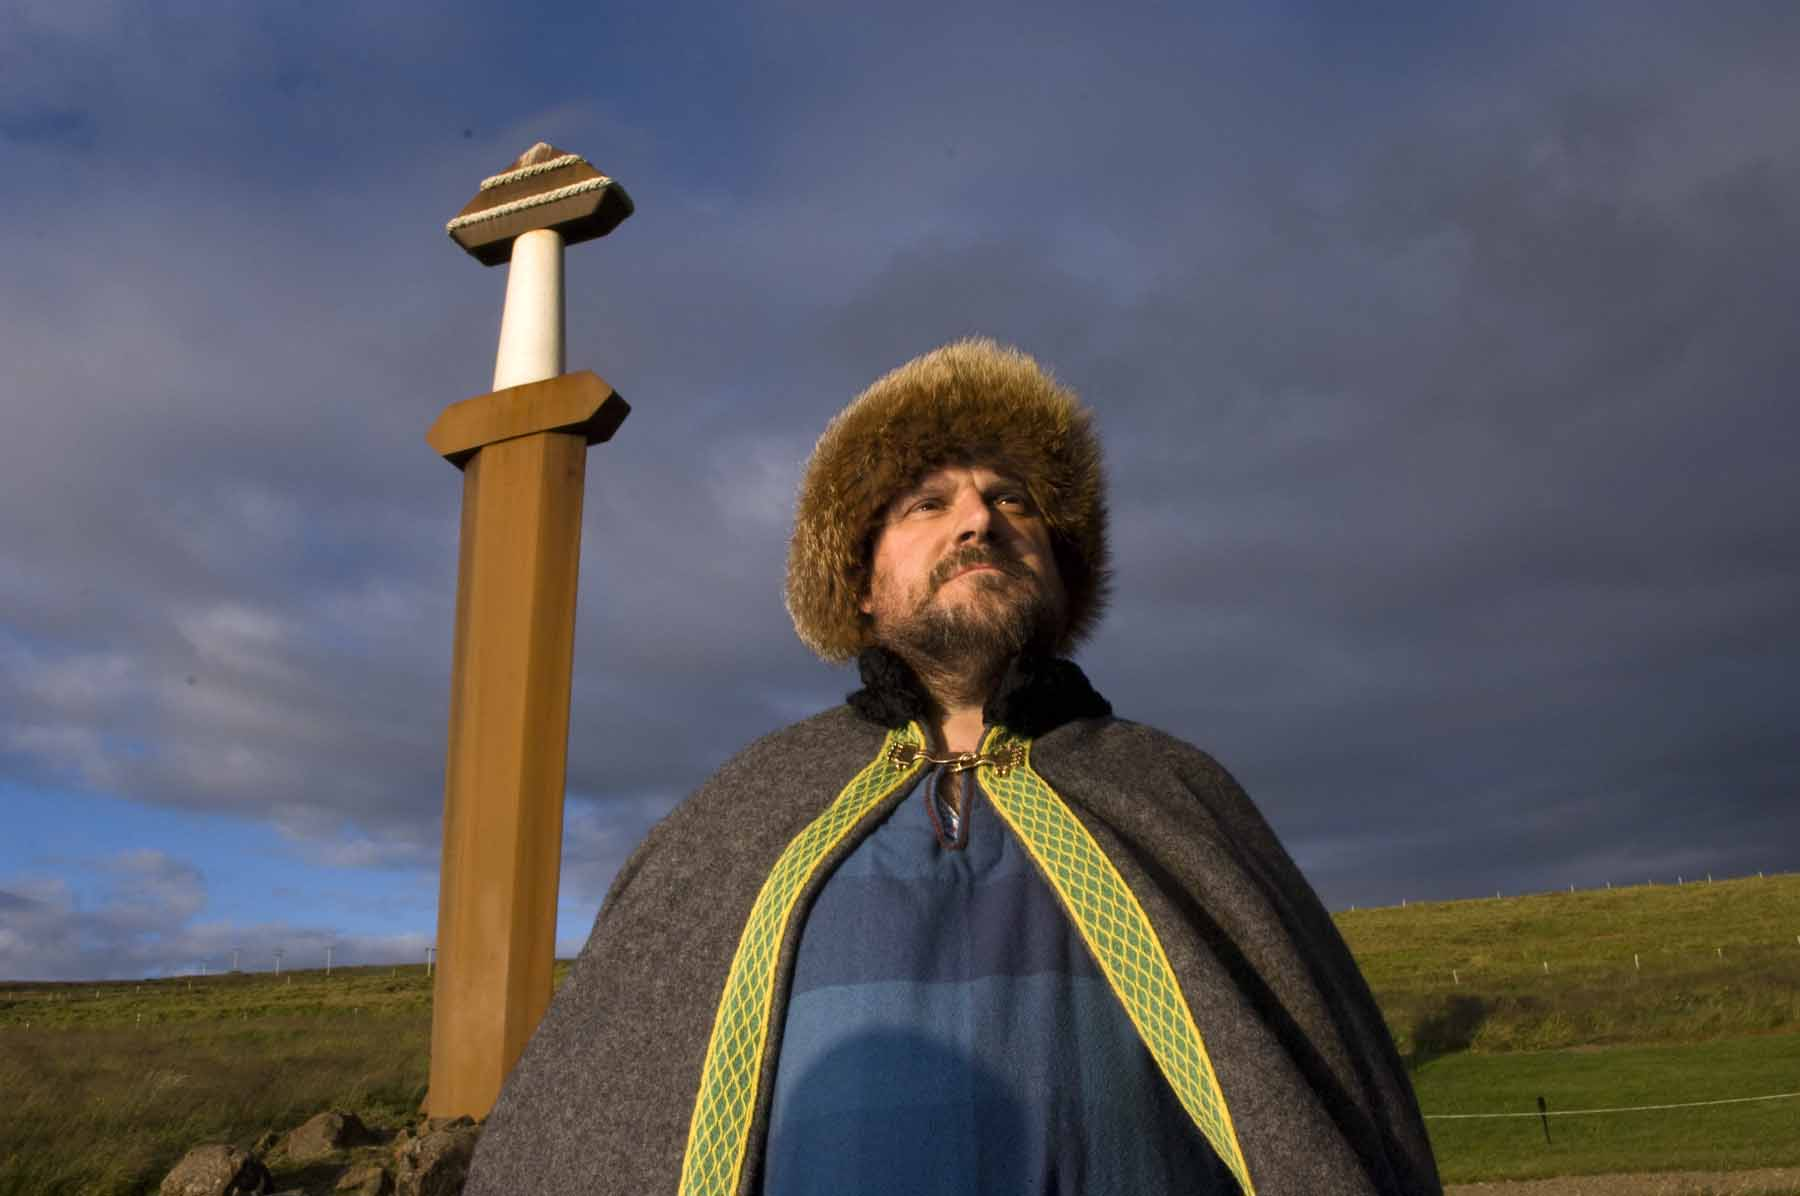 Orcadian storyteller Tom Muir in his Viking garb. Tom is the only living traditional native Orcadian storyteller.